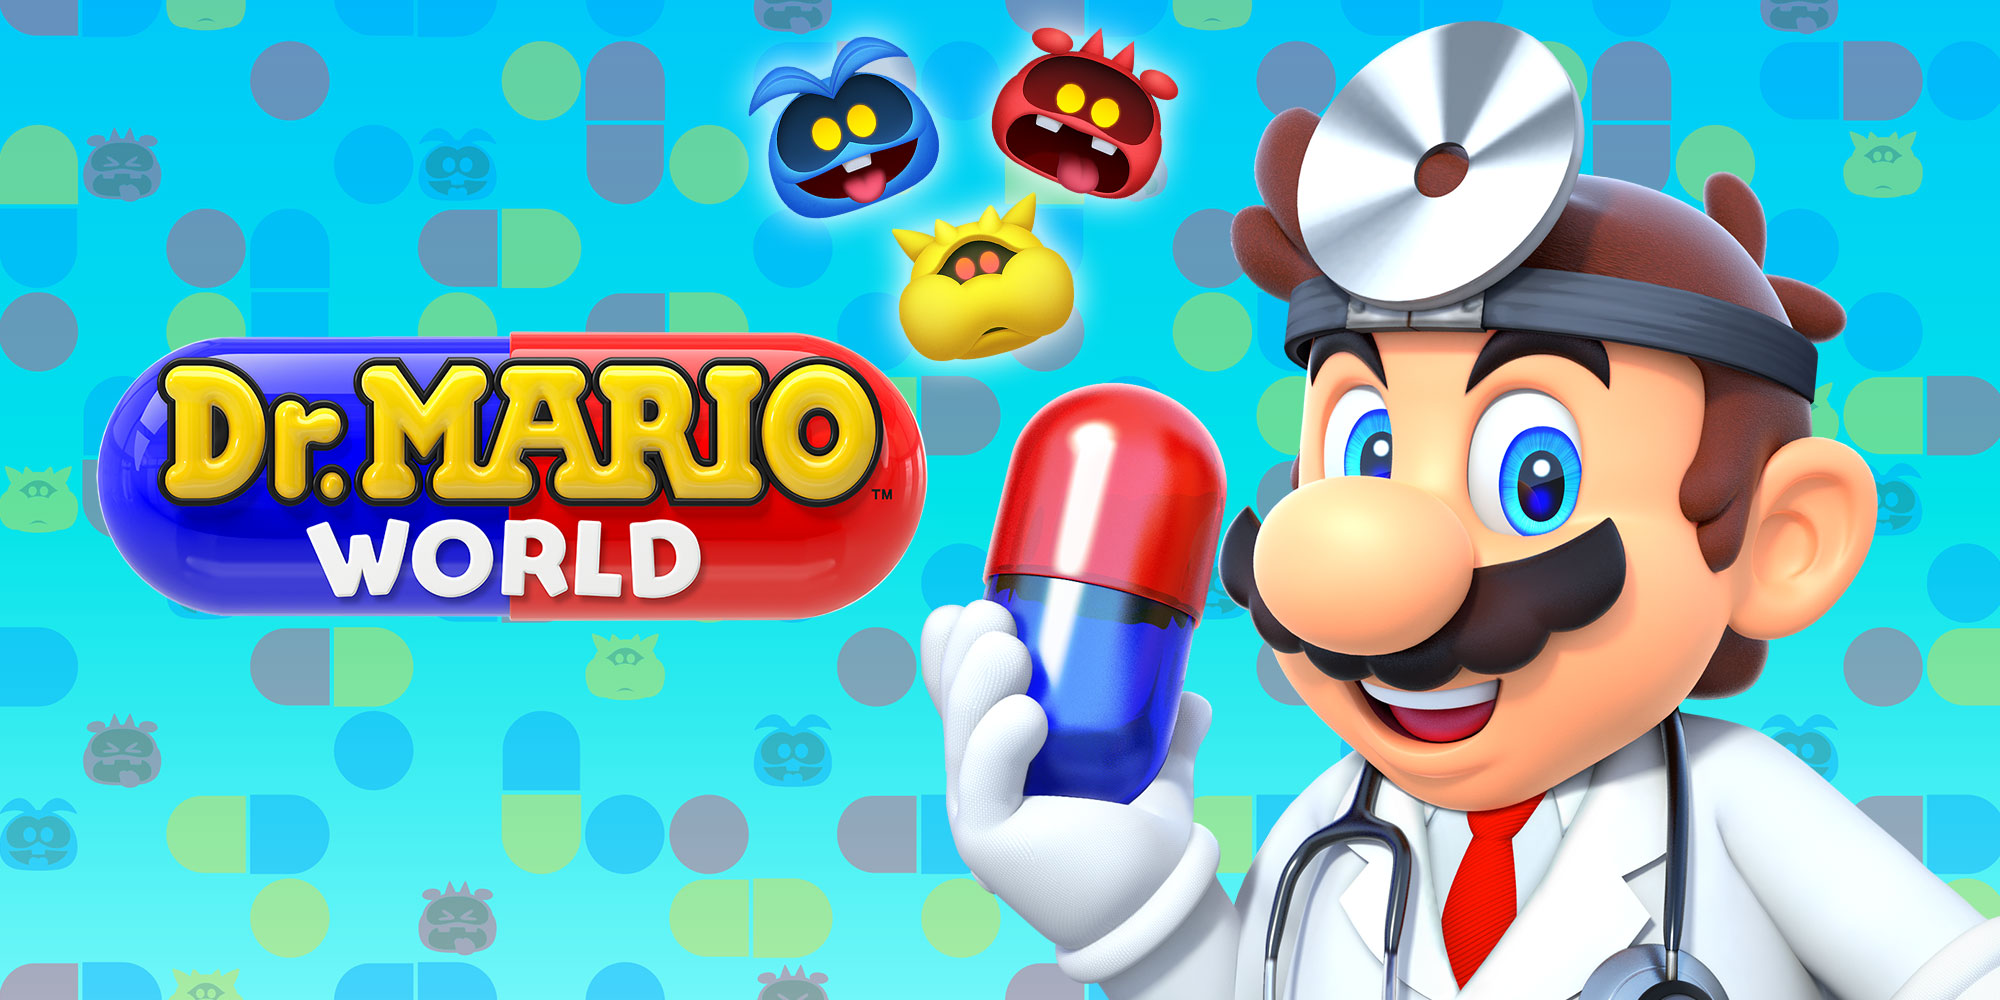 Dr. Mario World - content updates for August 27, 2020 | GoNintendo